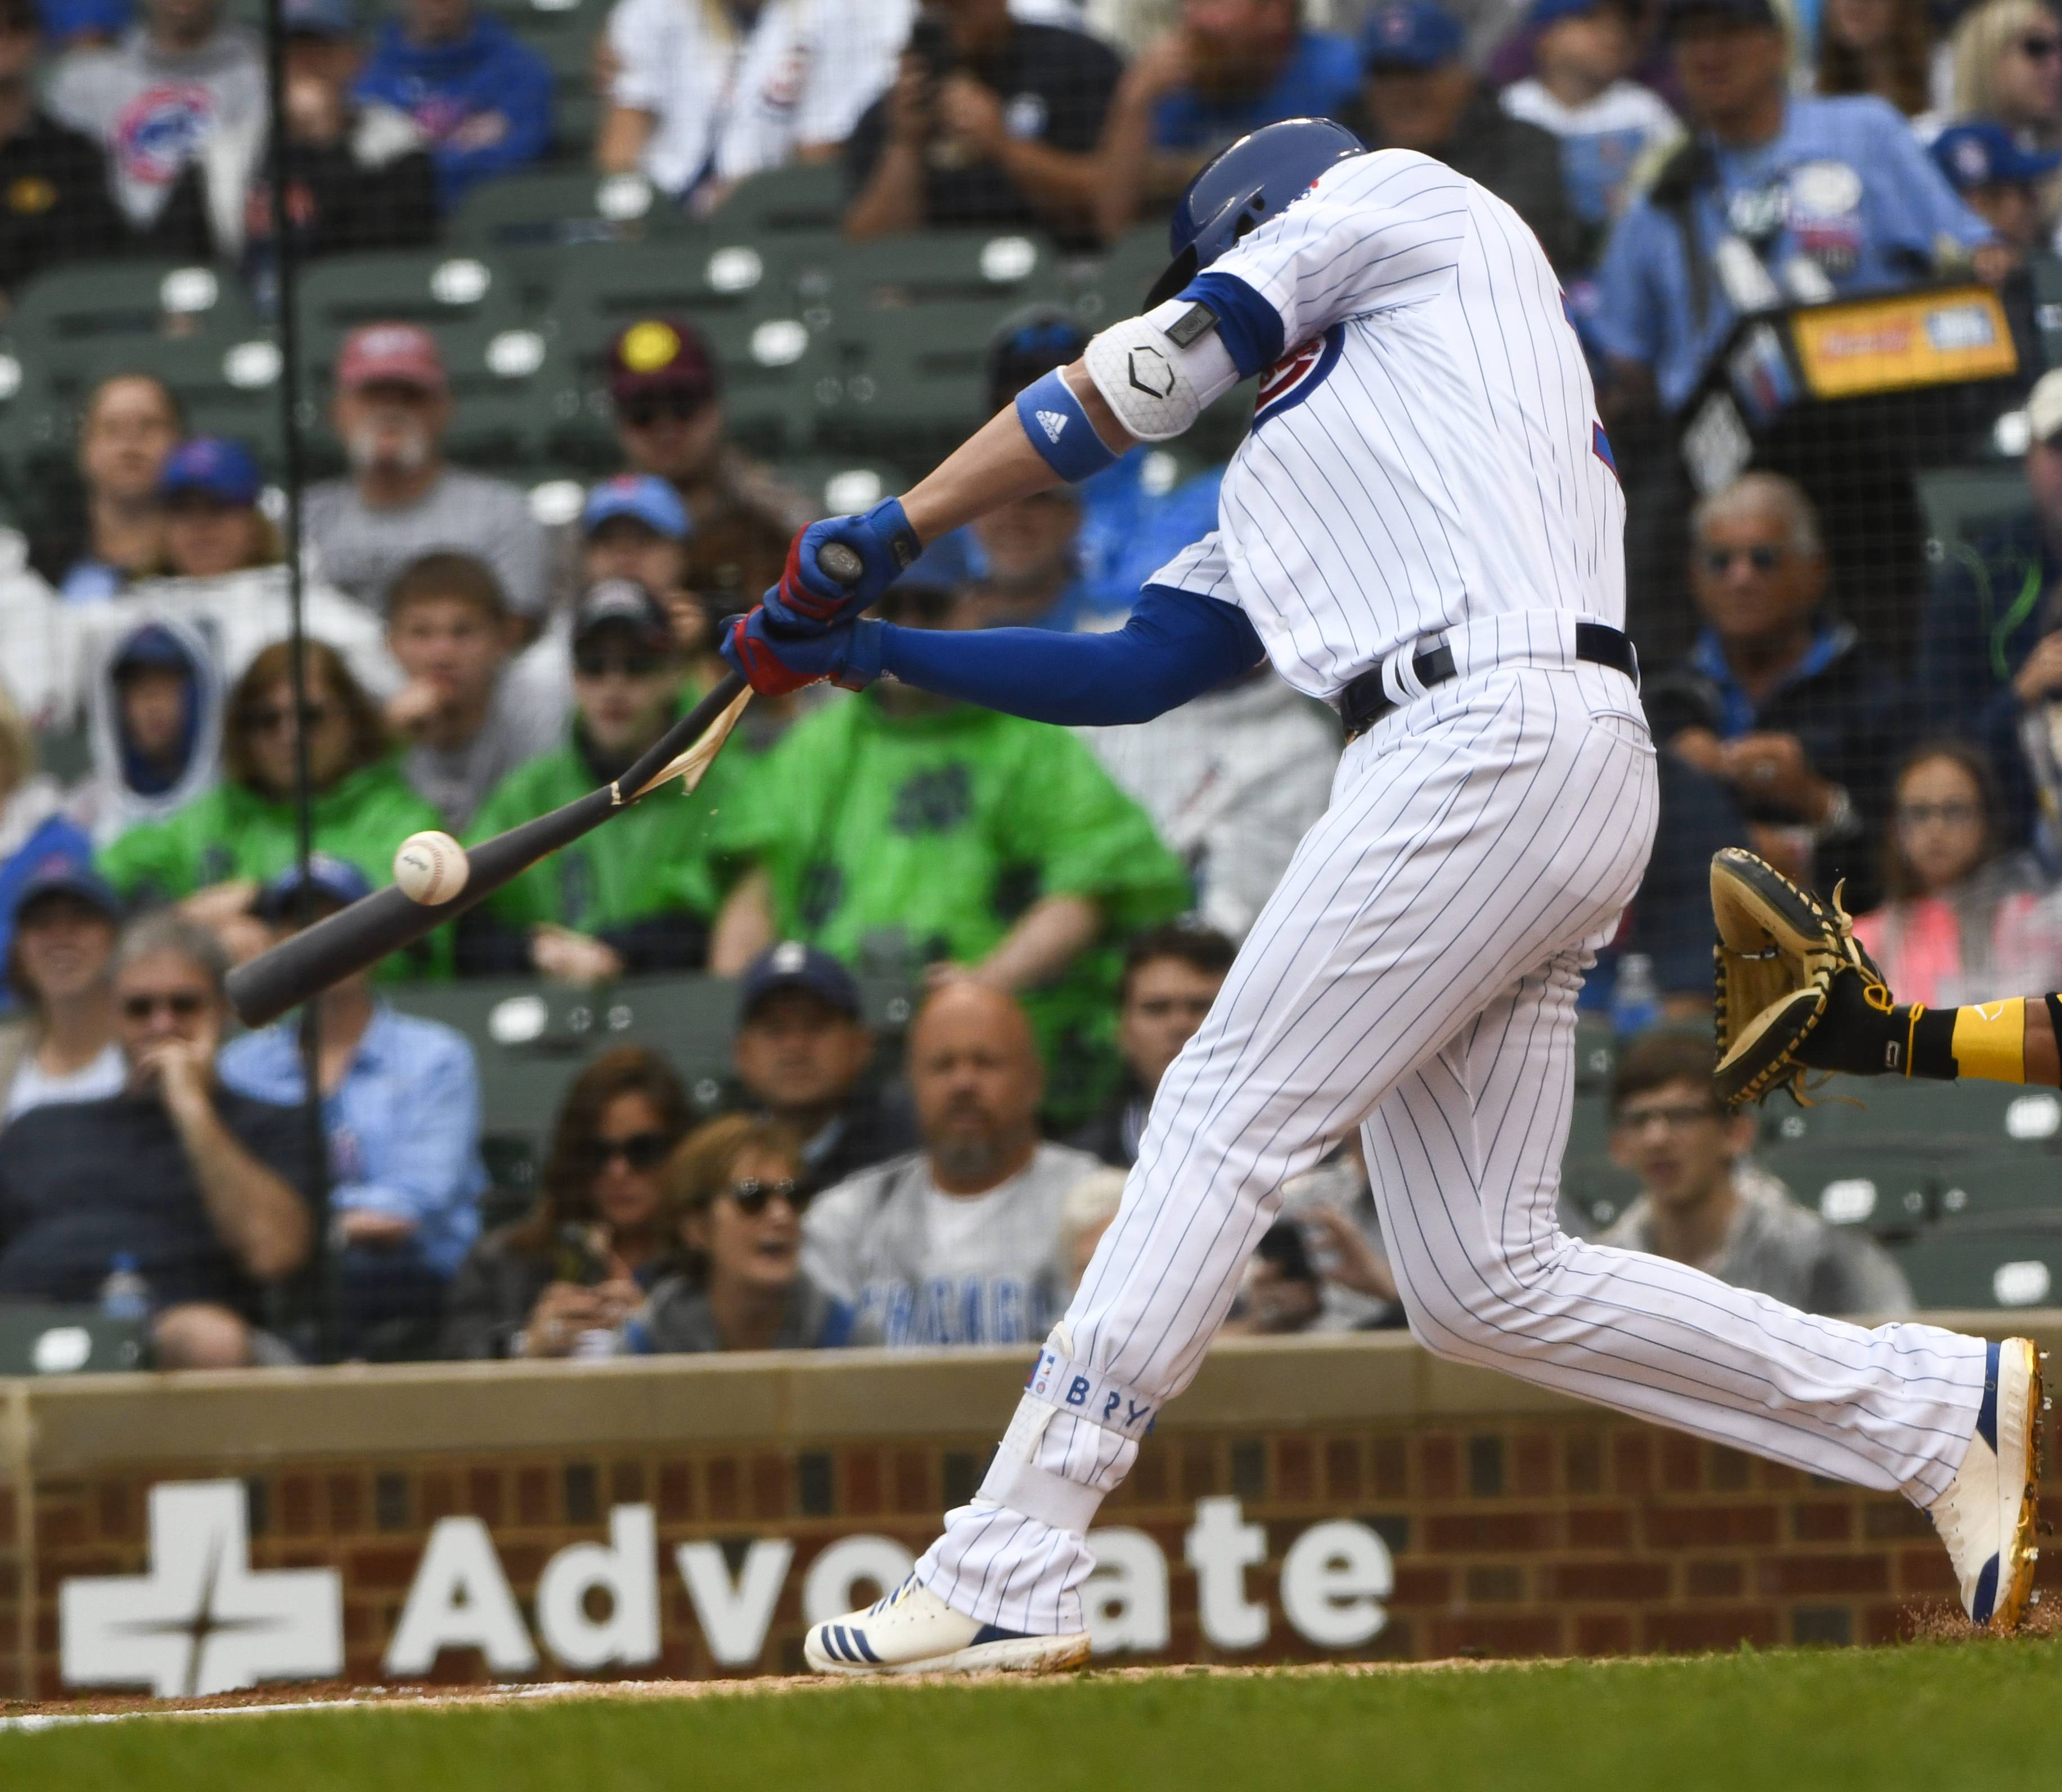 Chicago Cubs' Kris Bryant breaks his bat while hitting during the first inning of a baseball game against the Pittsburgh Pirates, Sunday, June 10, 2018, in Chicago.